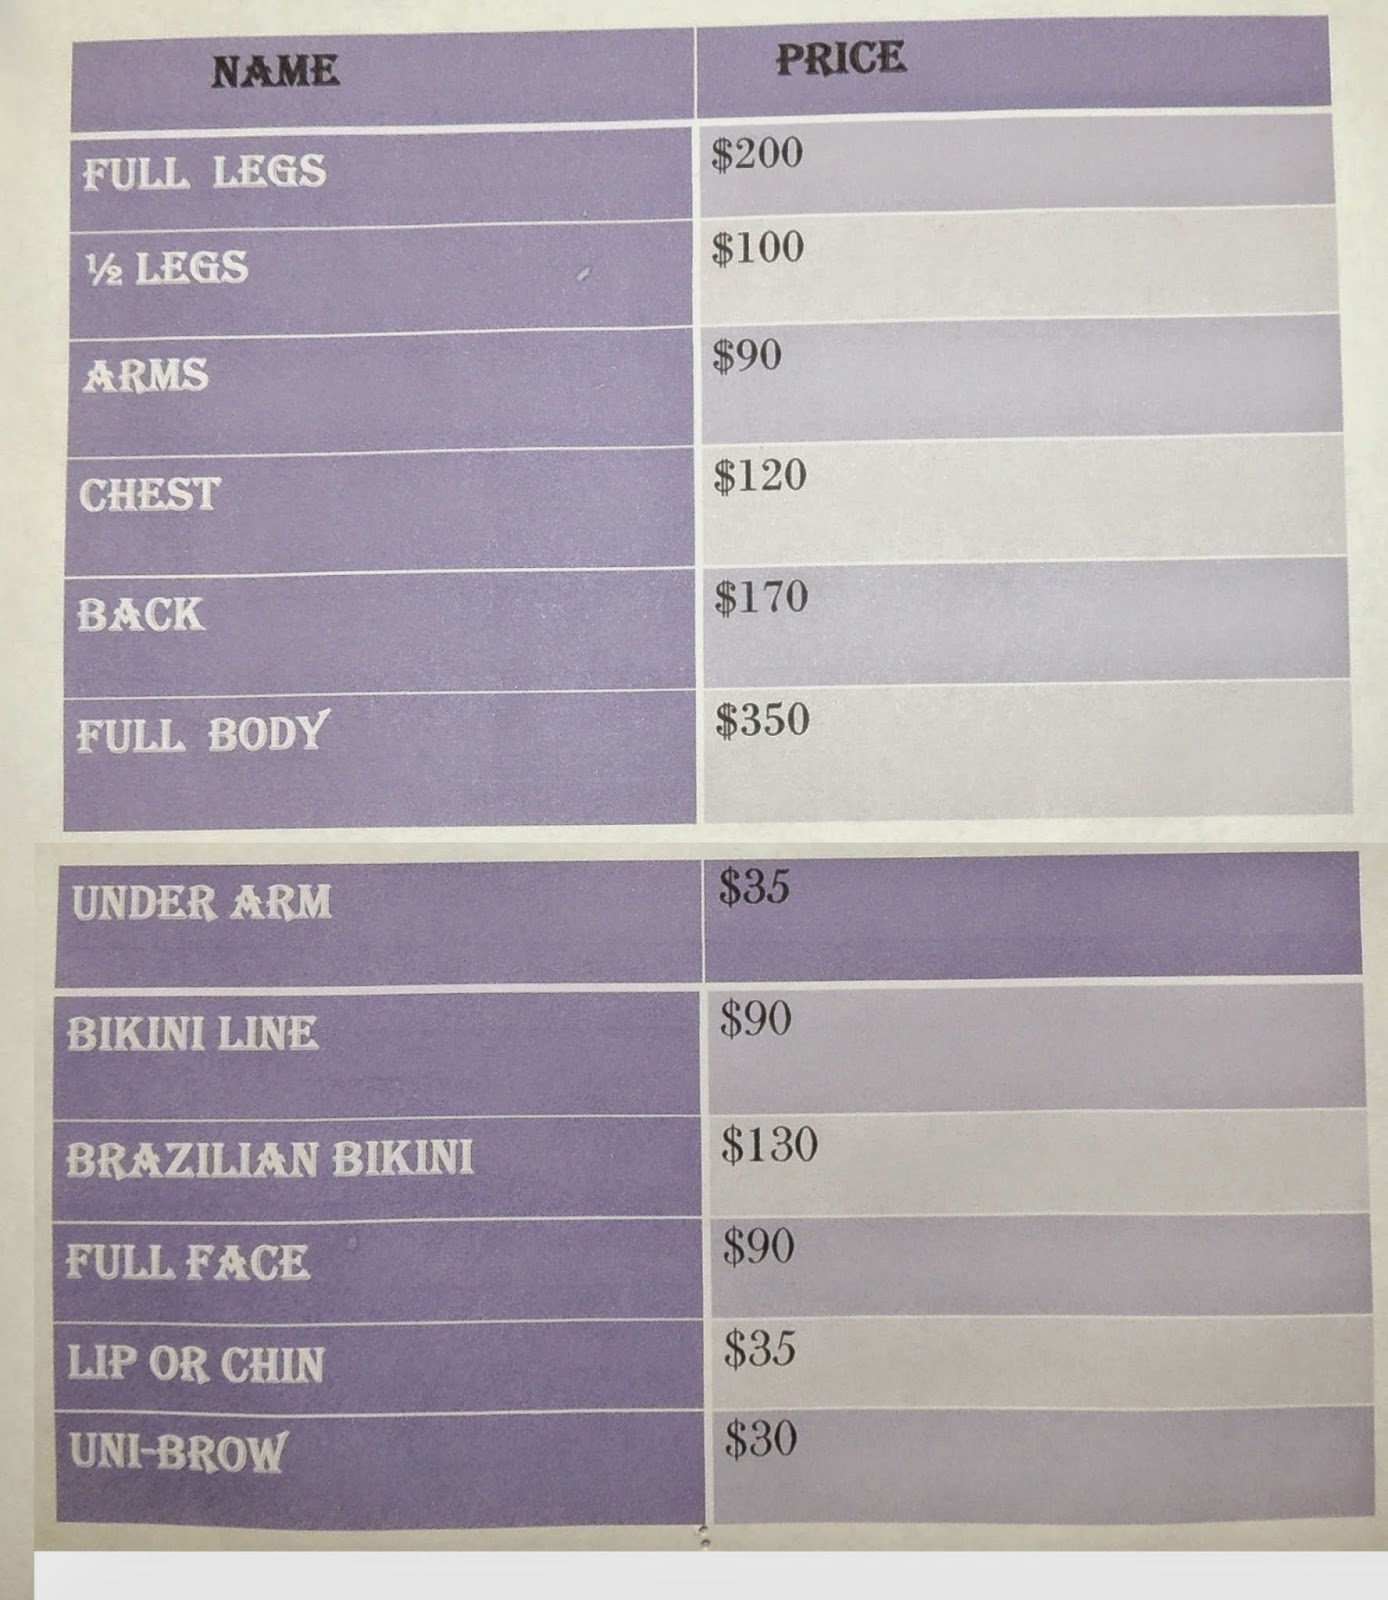 R G Inc Laser Center Laser Hair Removal Price List